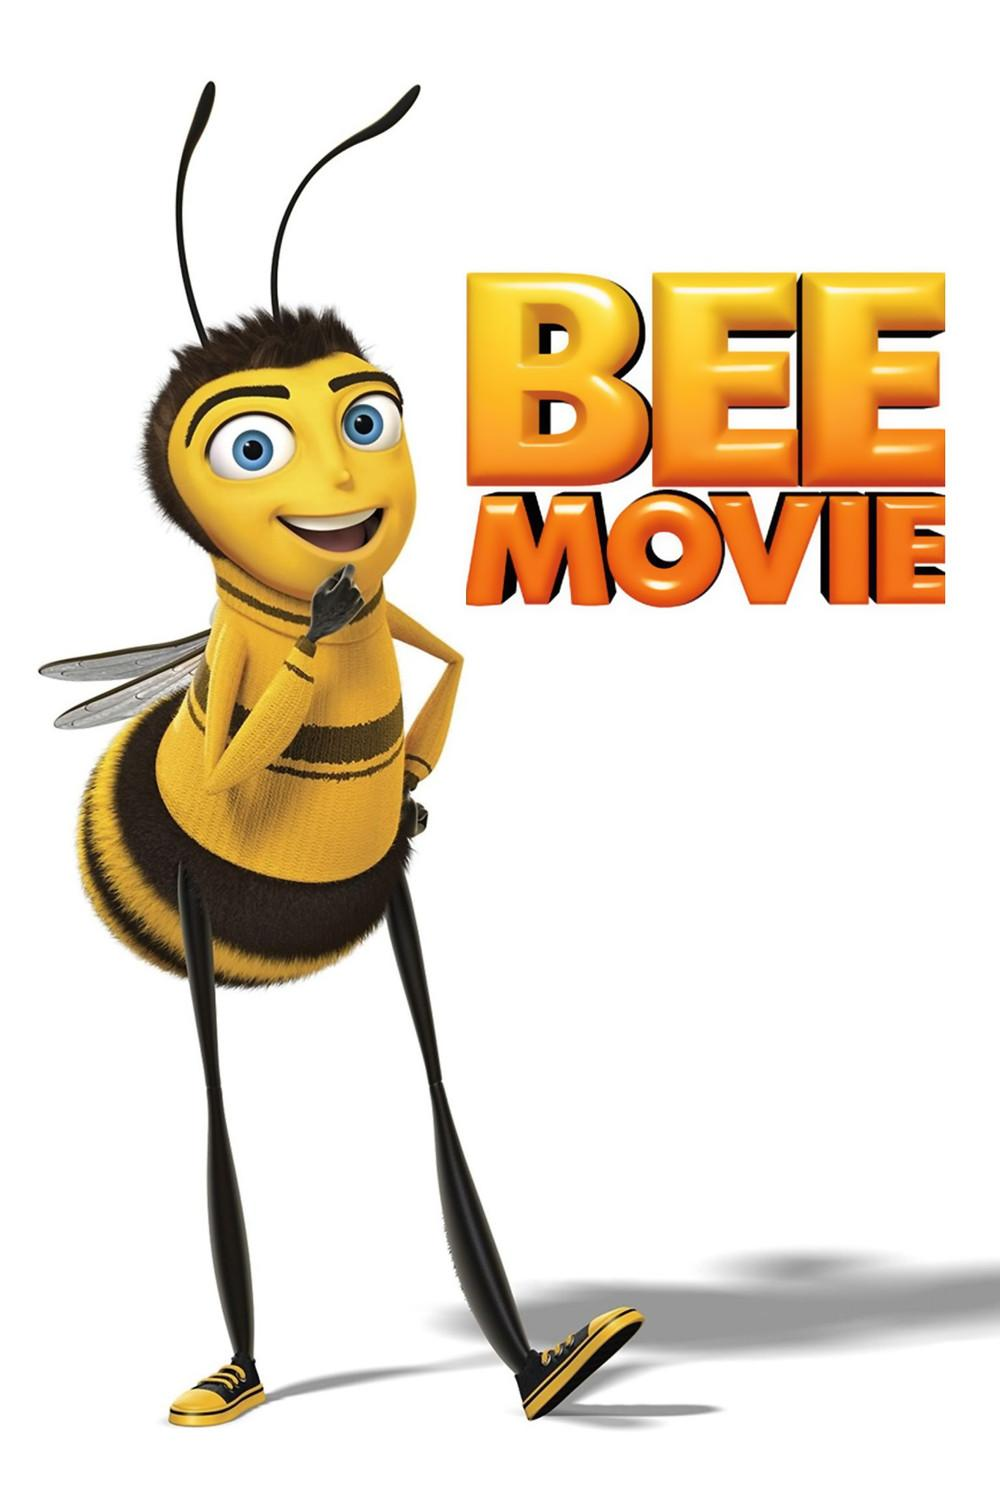 1000x1500 > Bee Movie Wallpapers